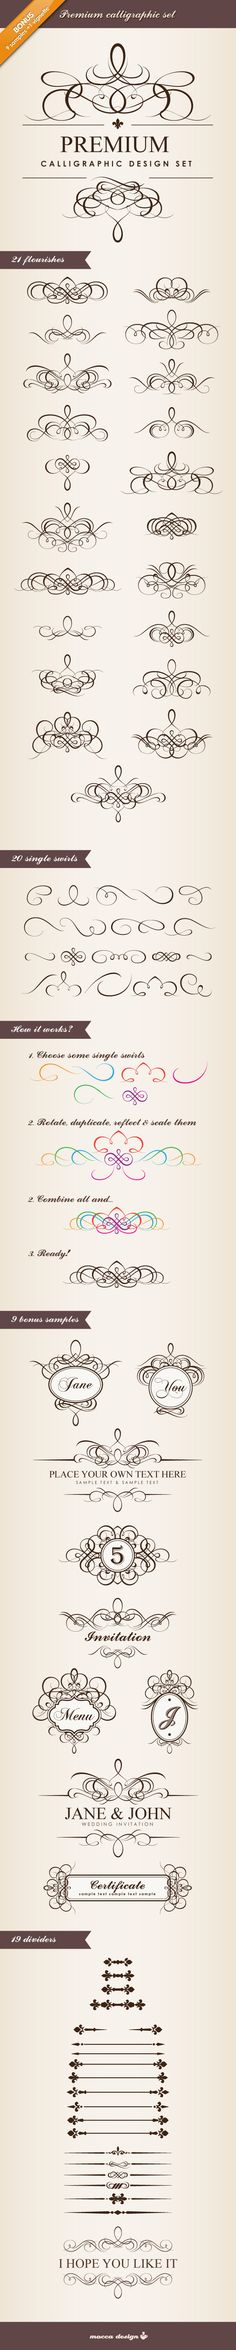 Free Vintage Clip Art Images Calligraphic Frames And